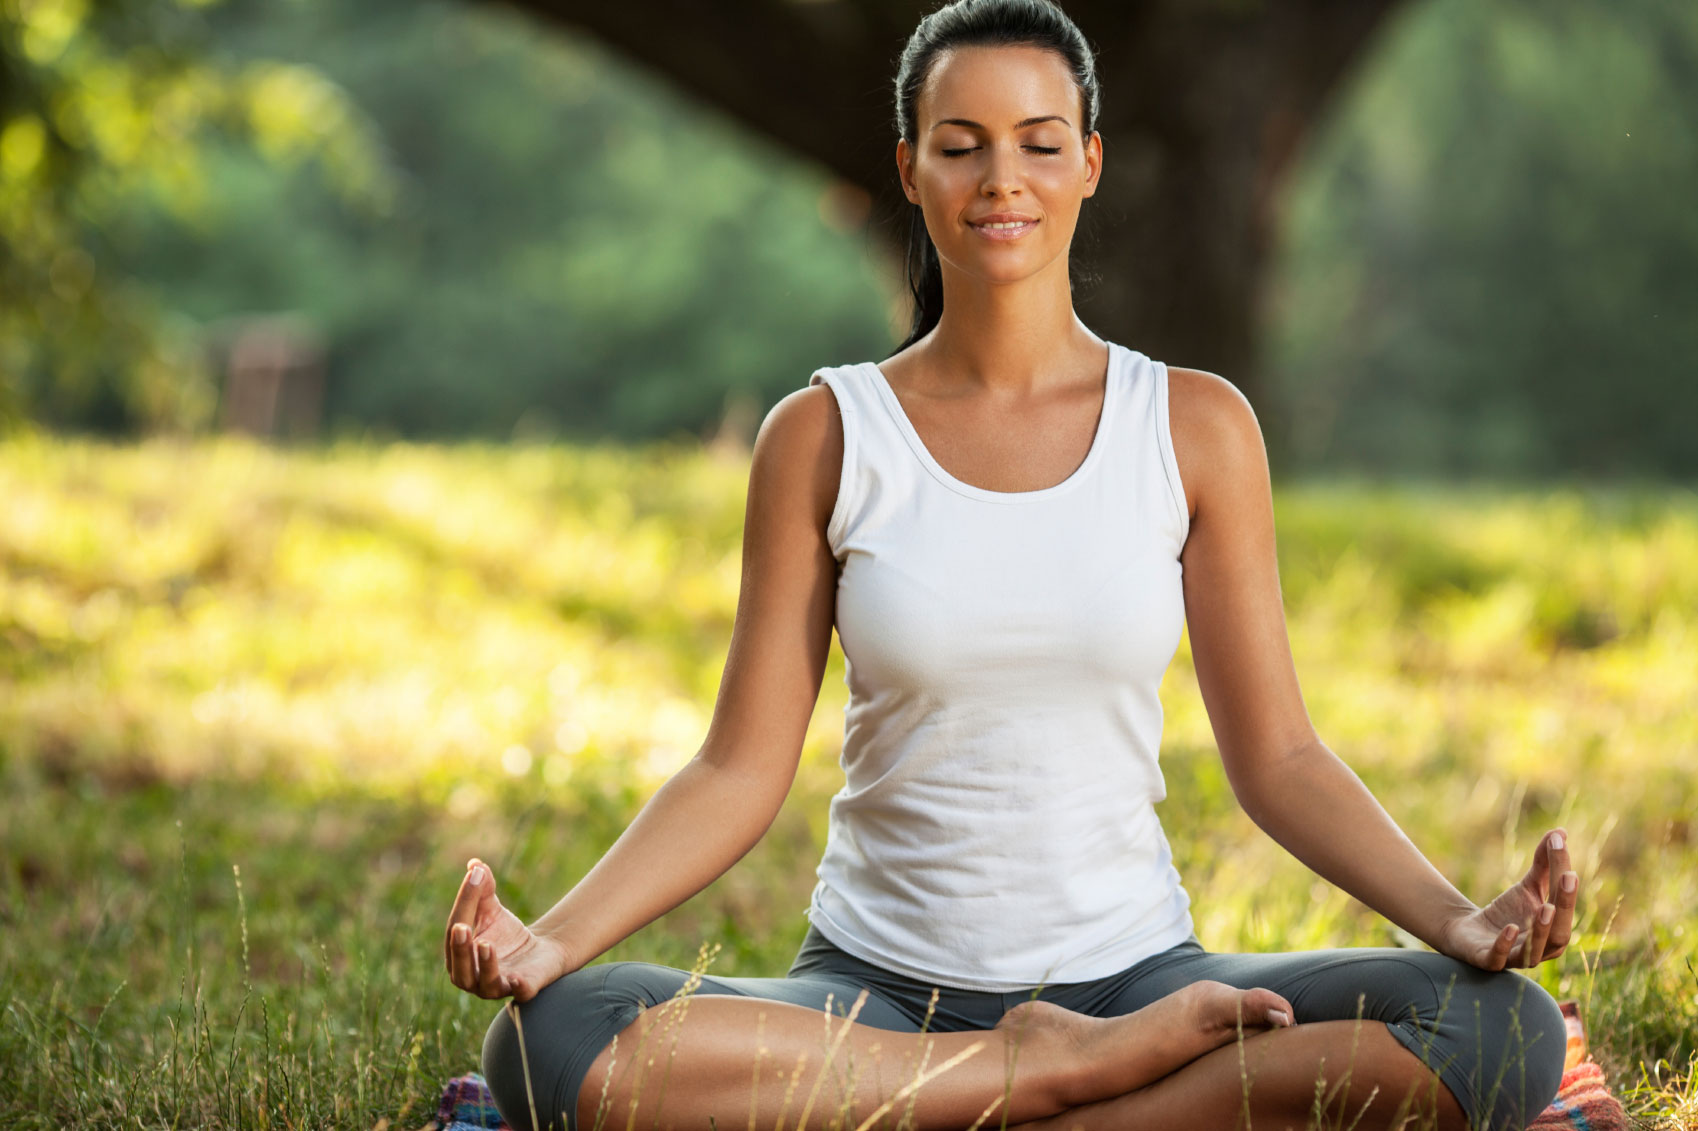 Health And Nature And Yoga And Youth